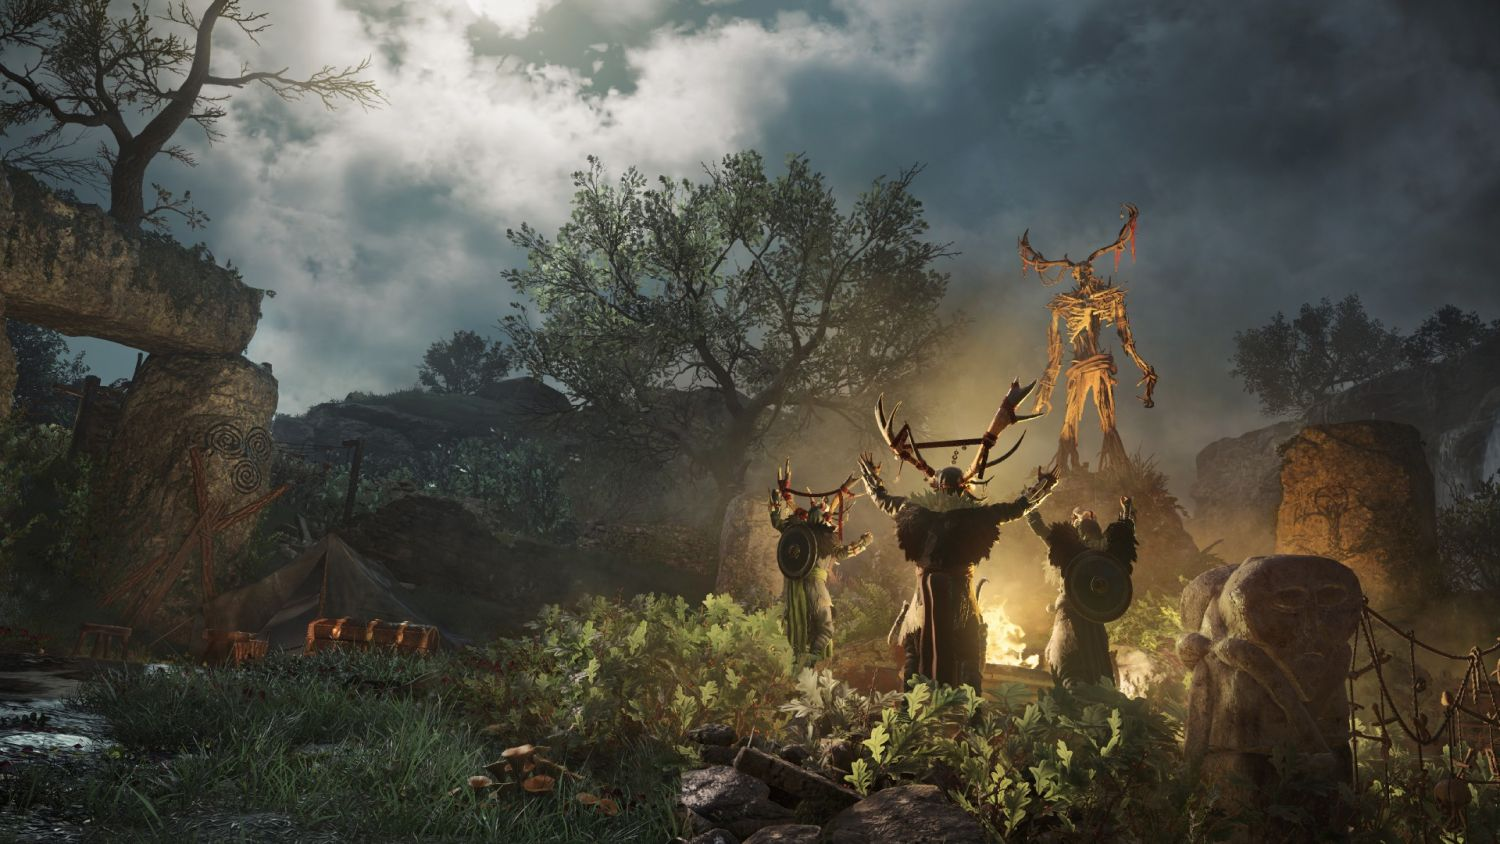 Assassin's Creed Valhalla - Wrath of the Druids - The Children of Danu